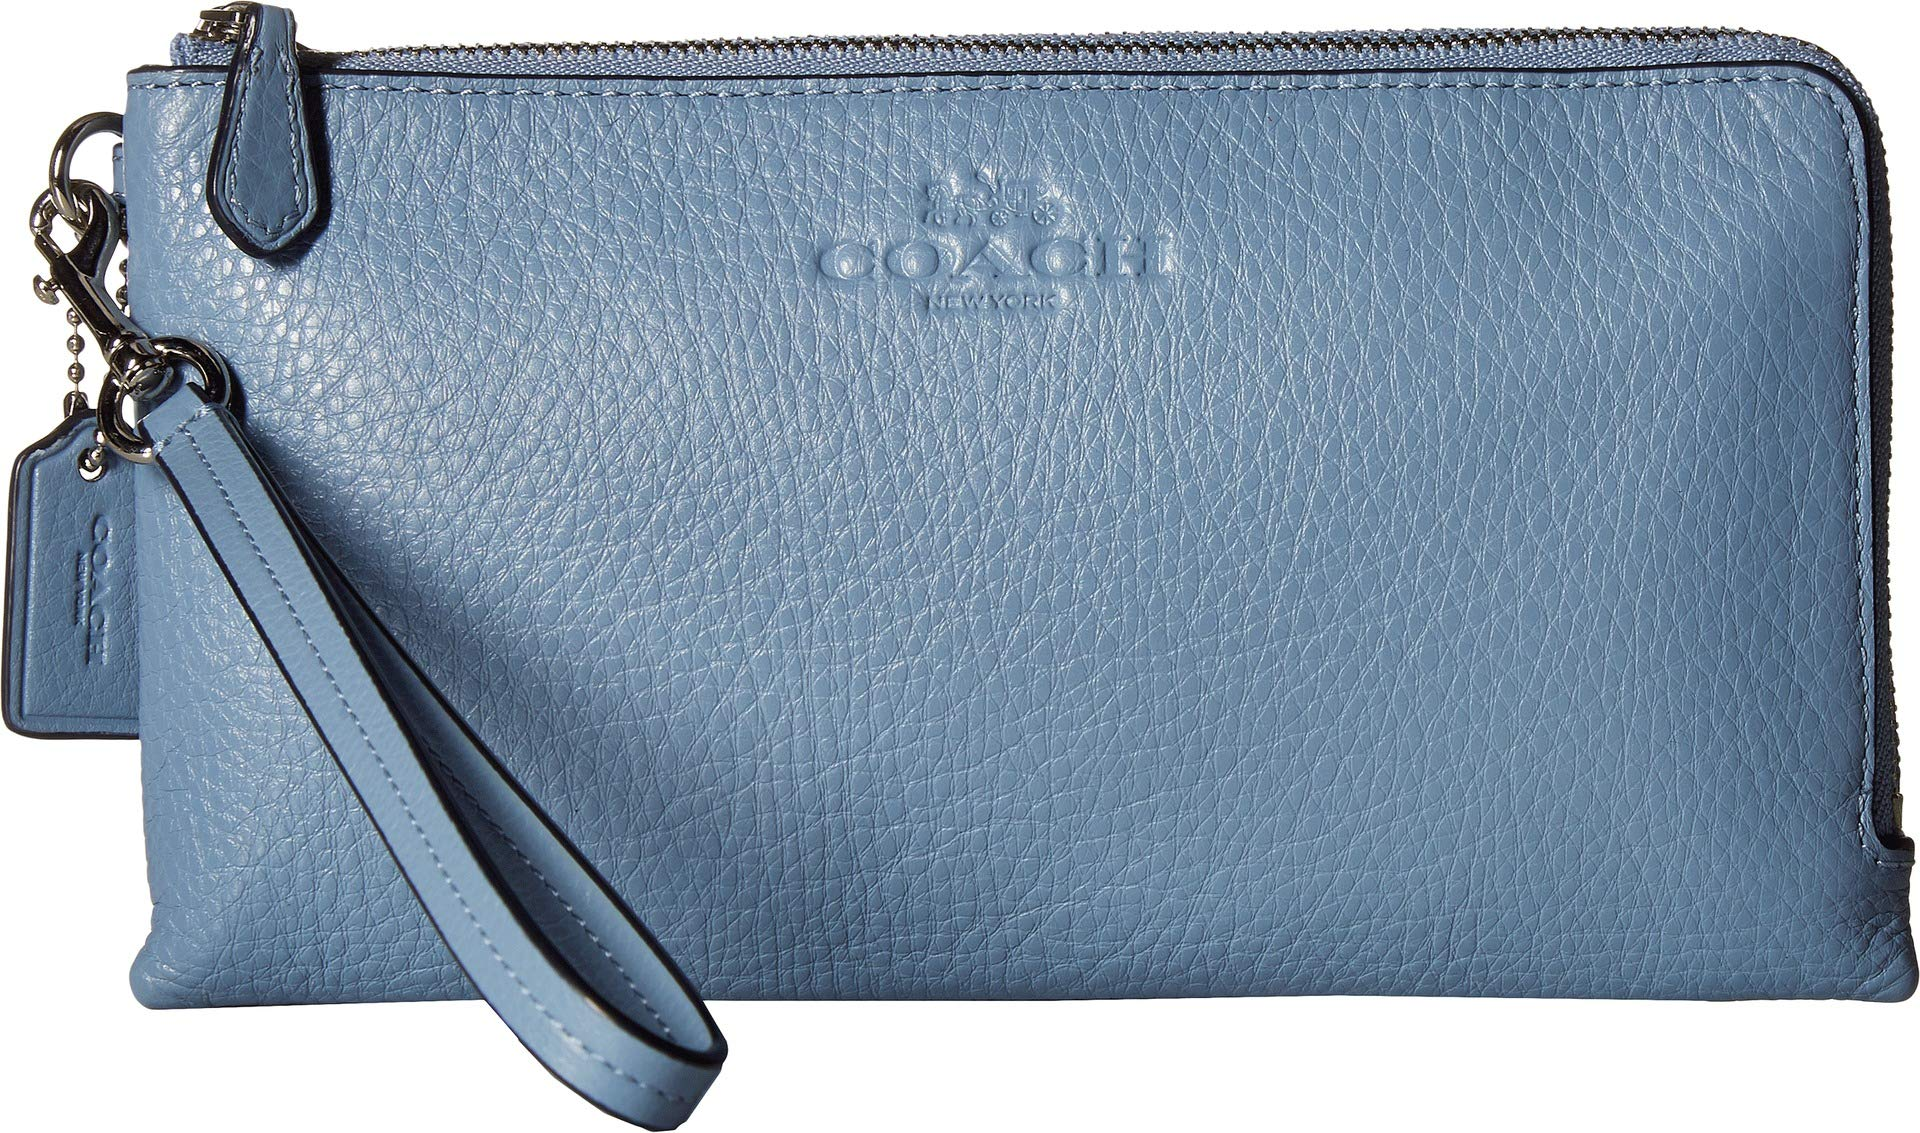 COACH Women's Pebbled Leather Double Zip Wallet Sv/Pool One Size by Coach